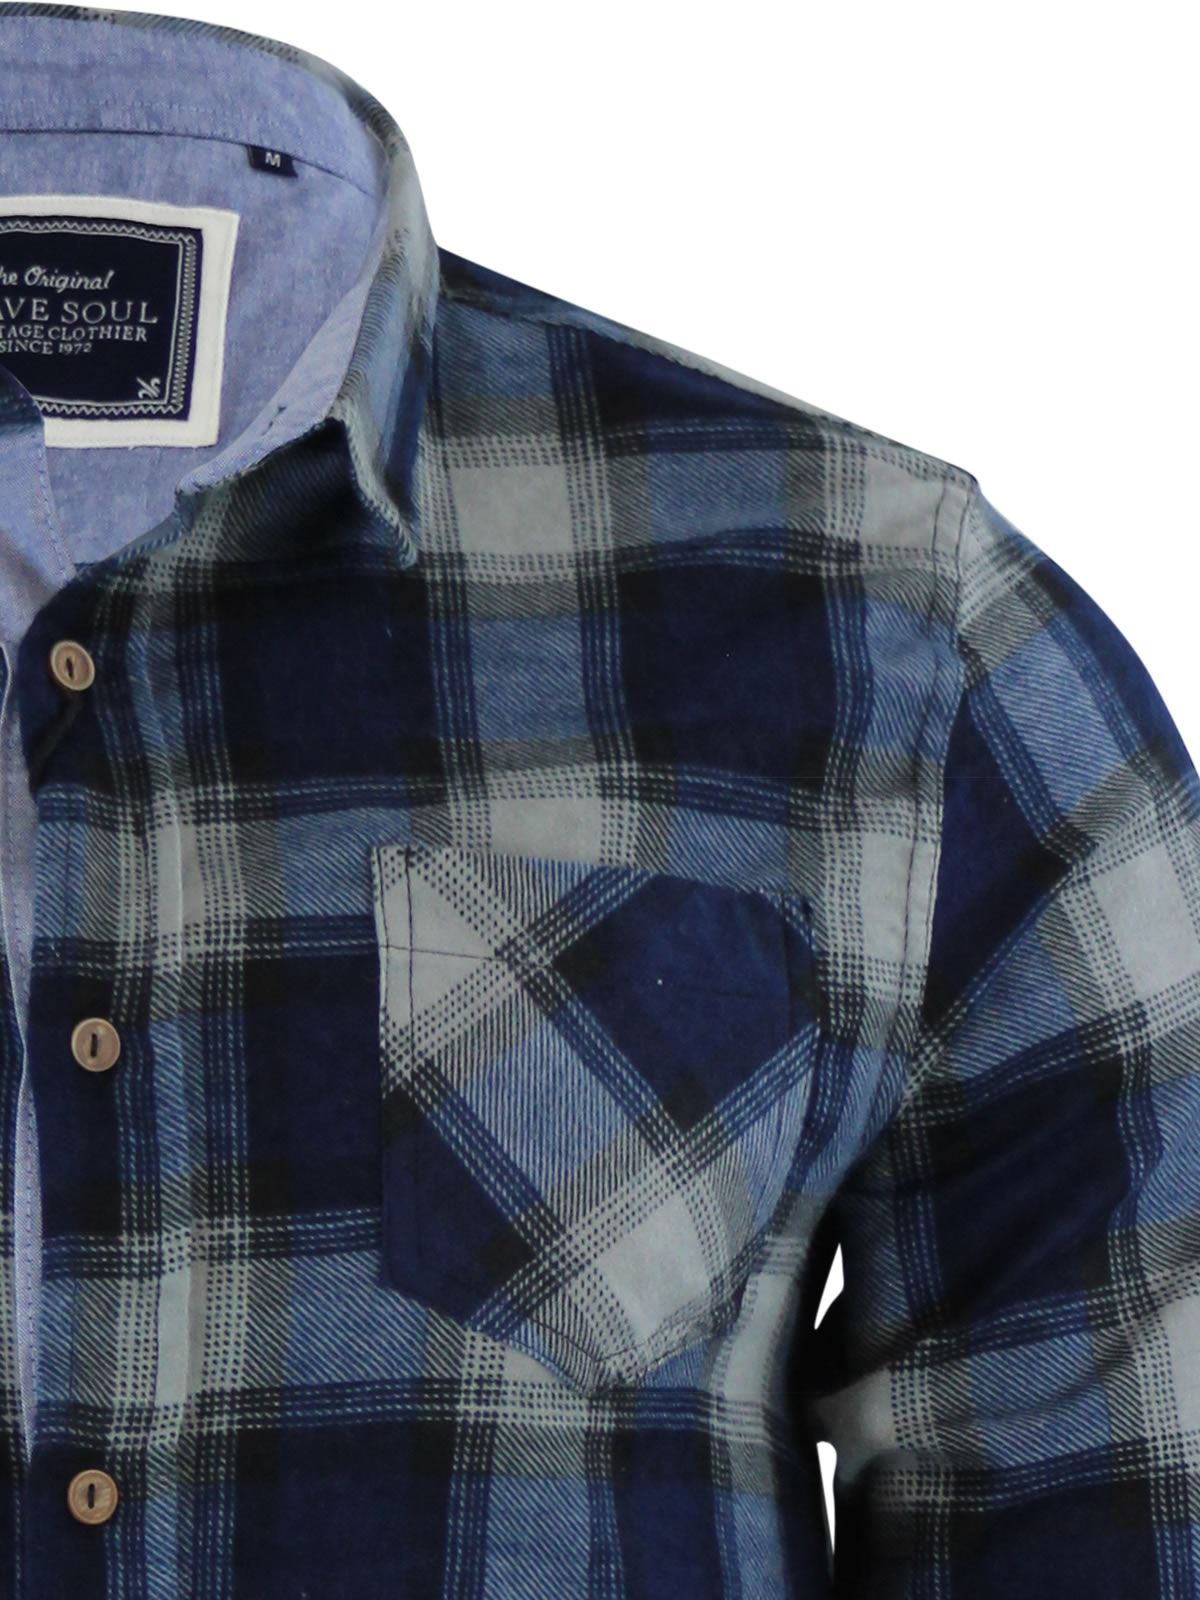 Mens-Check-Shirt-Brave-Soul-Flannel-Brushed-Cotton-Long-Sleeve-Casual-Top thumbnail 40